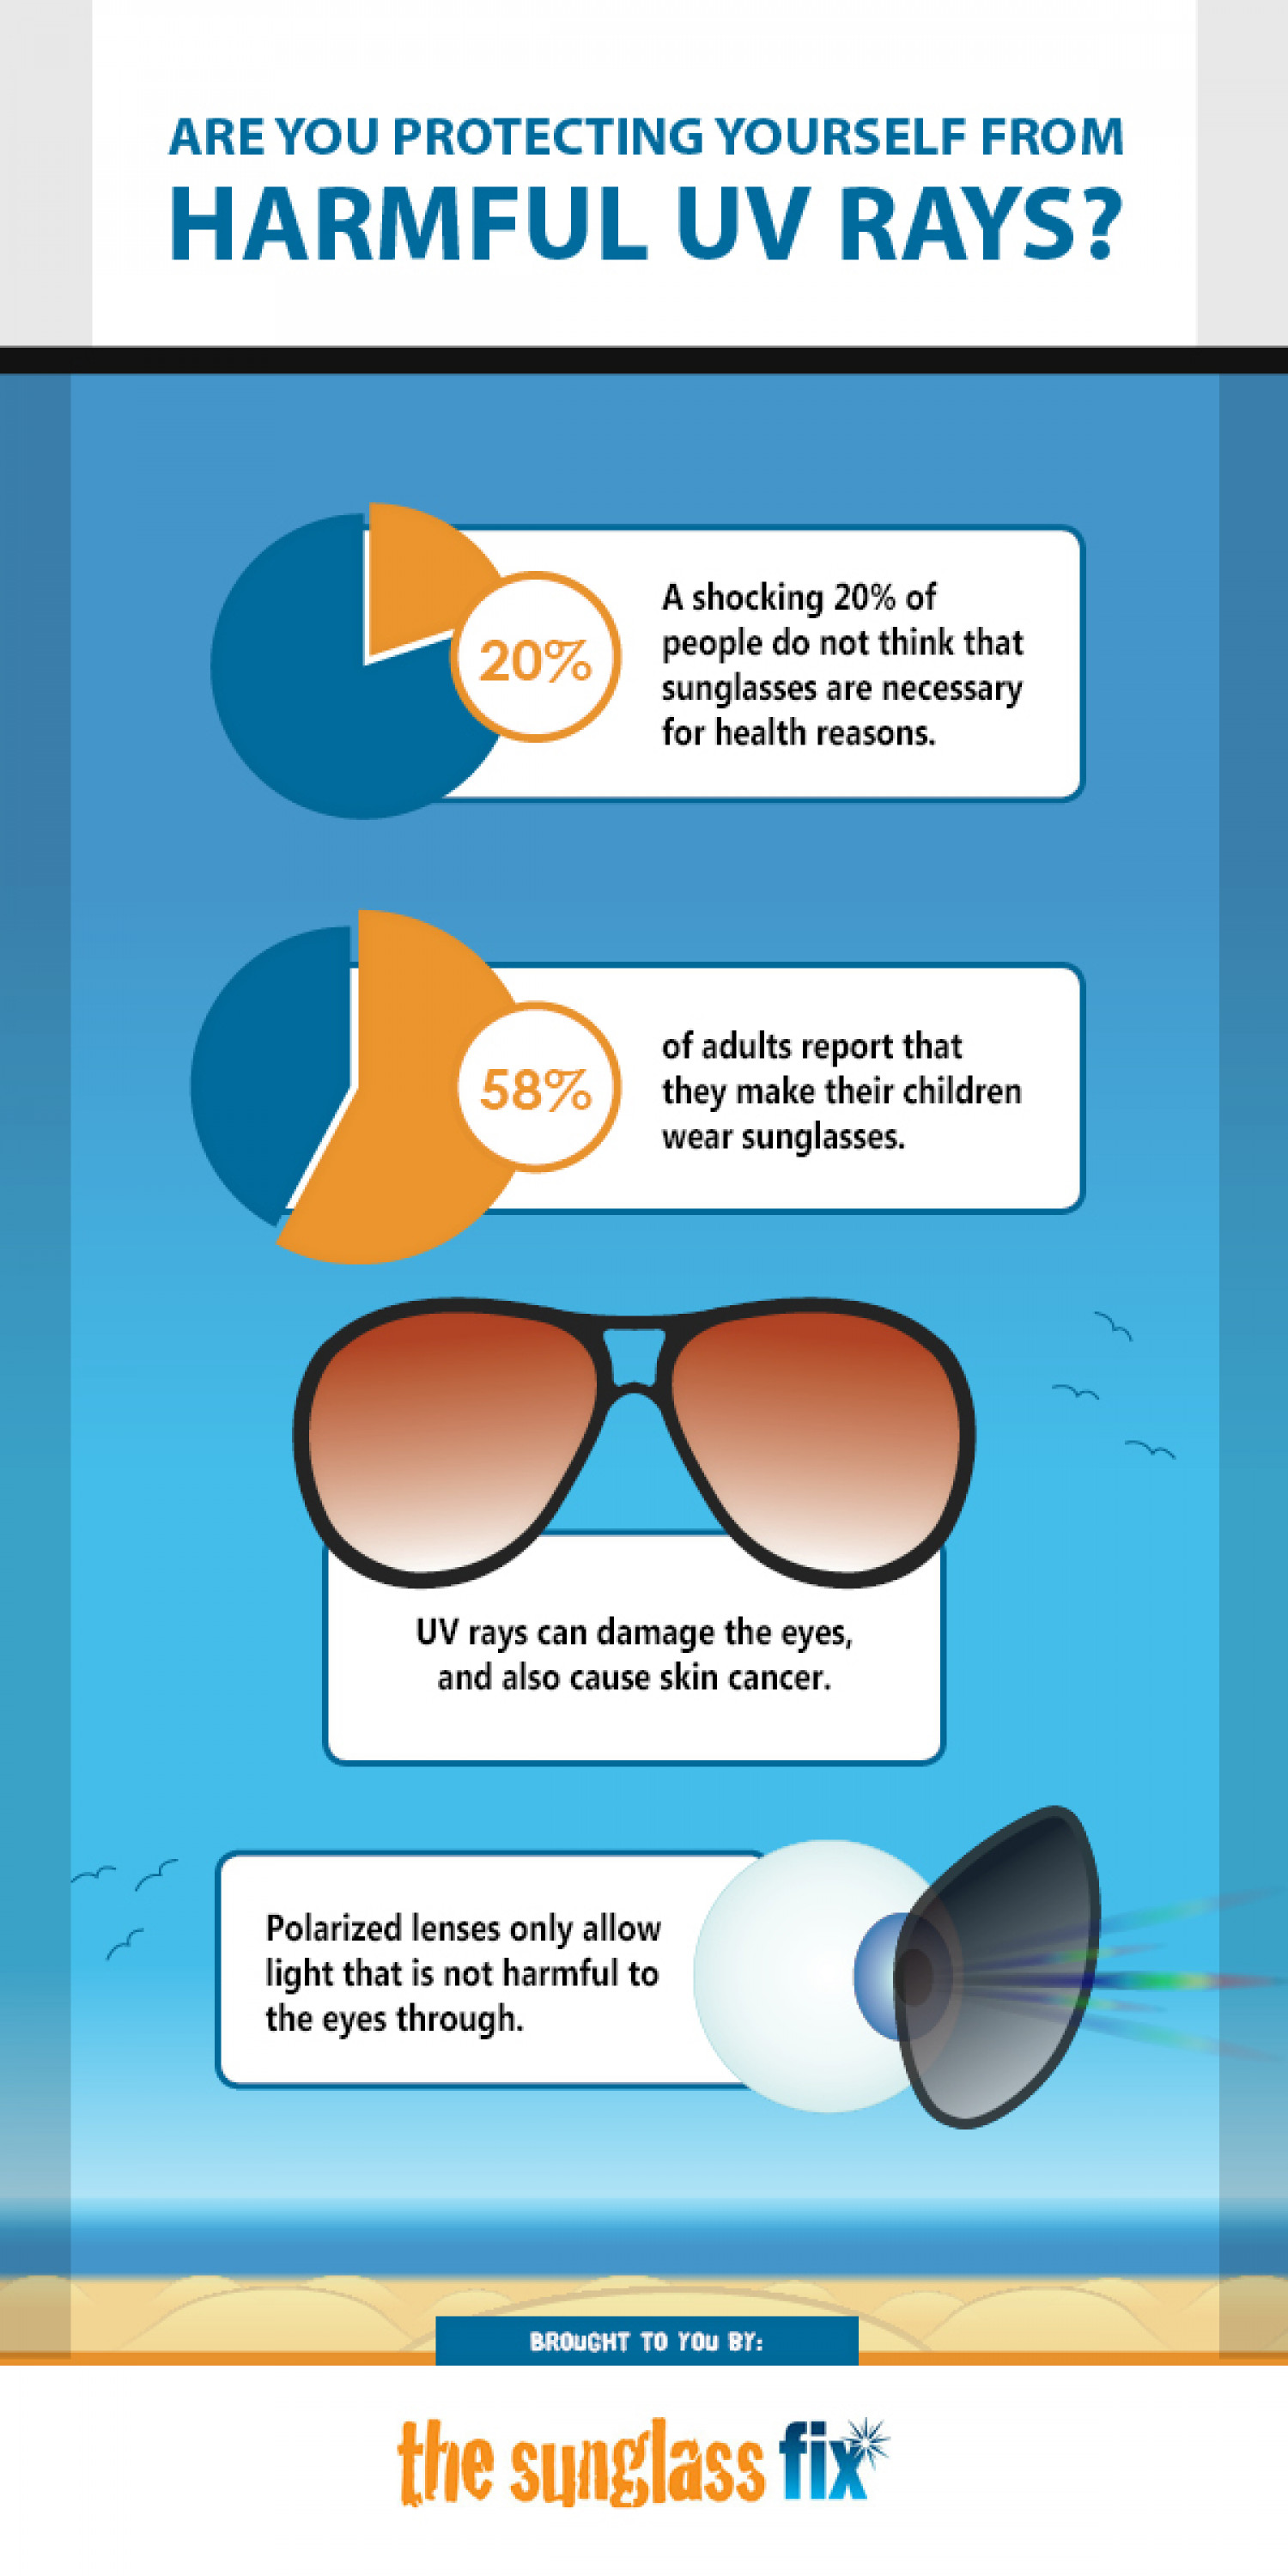 Are You Protecting Yourself From Harmful UV Rays? Infographic